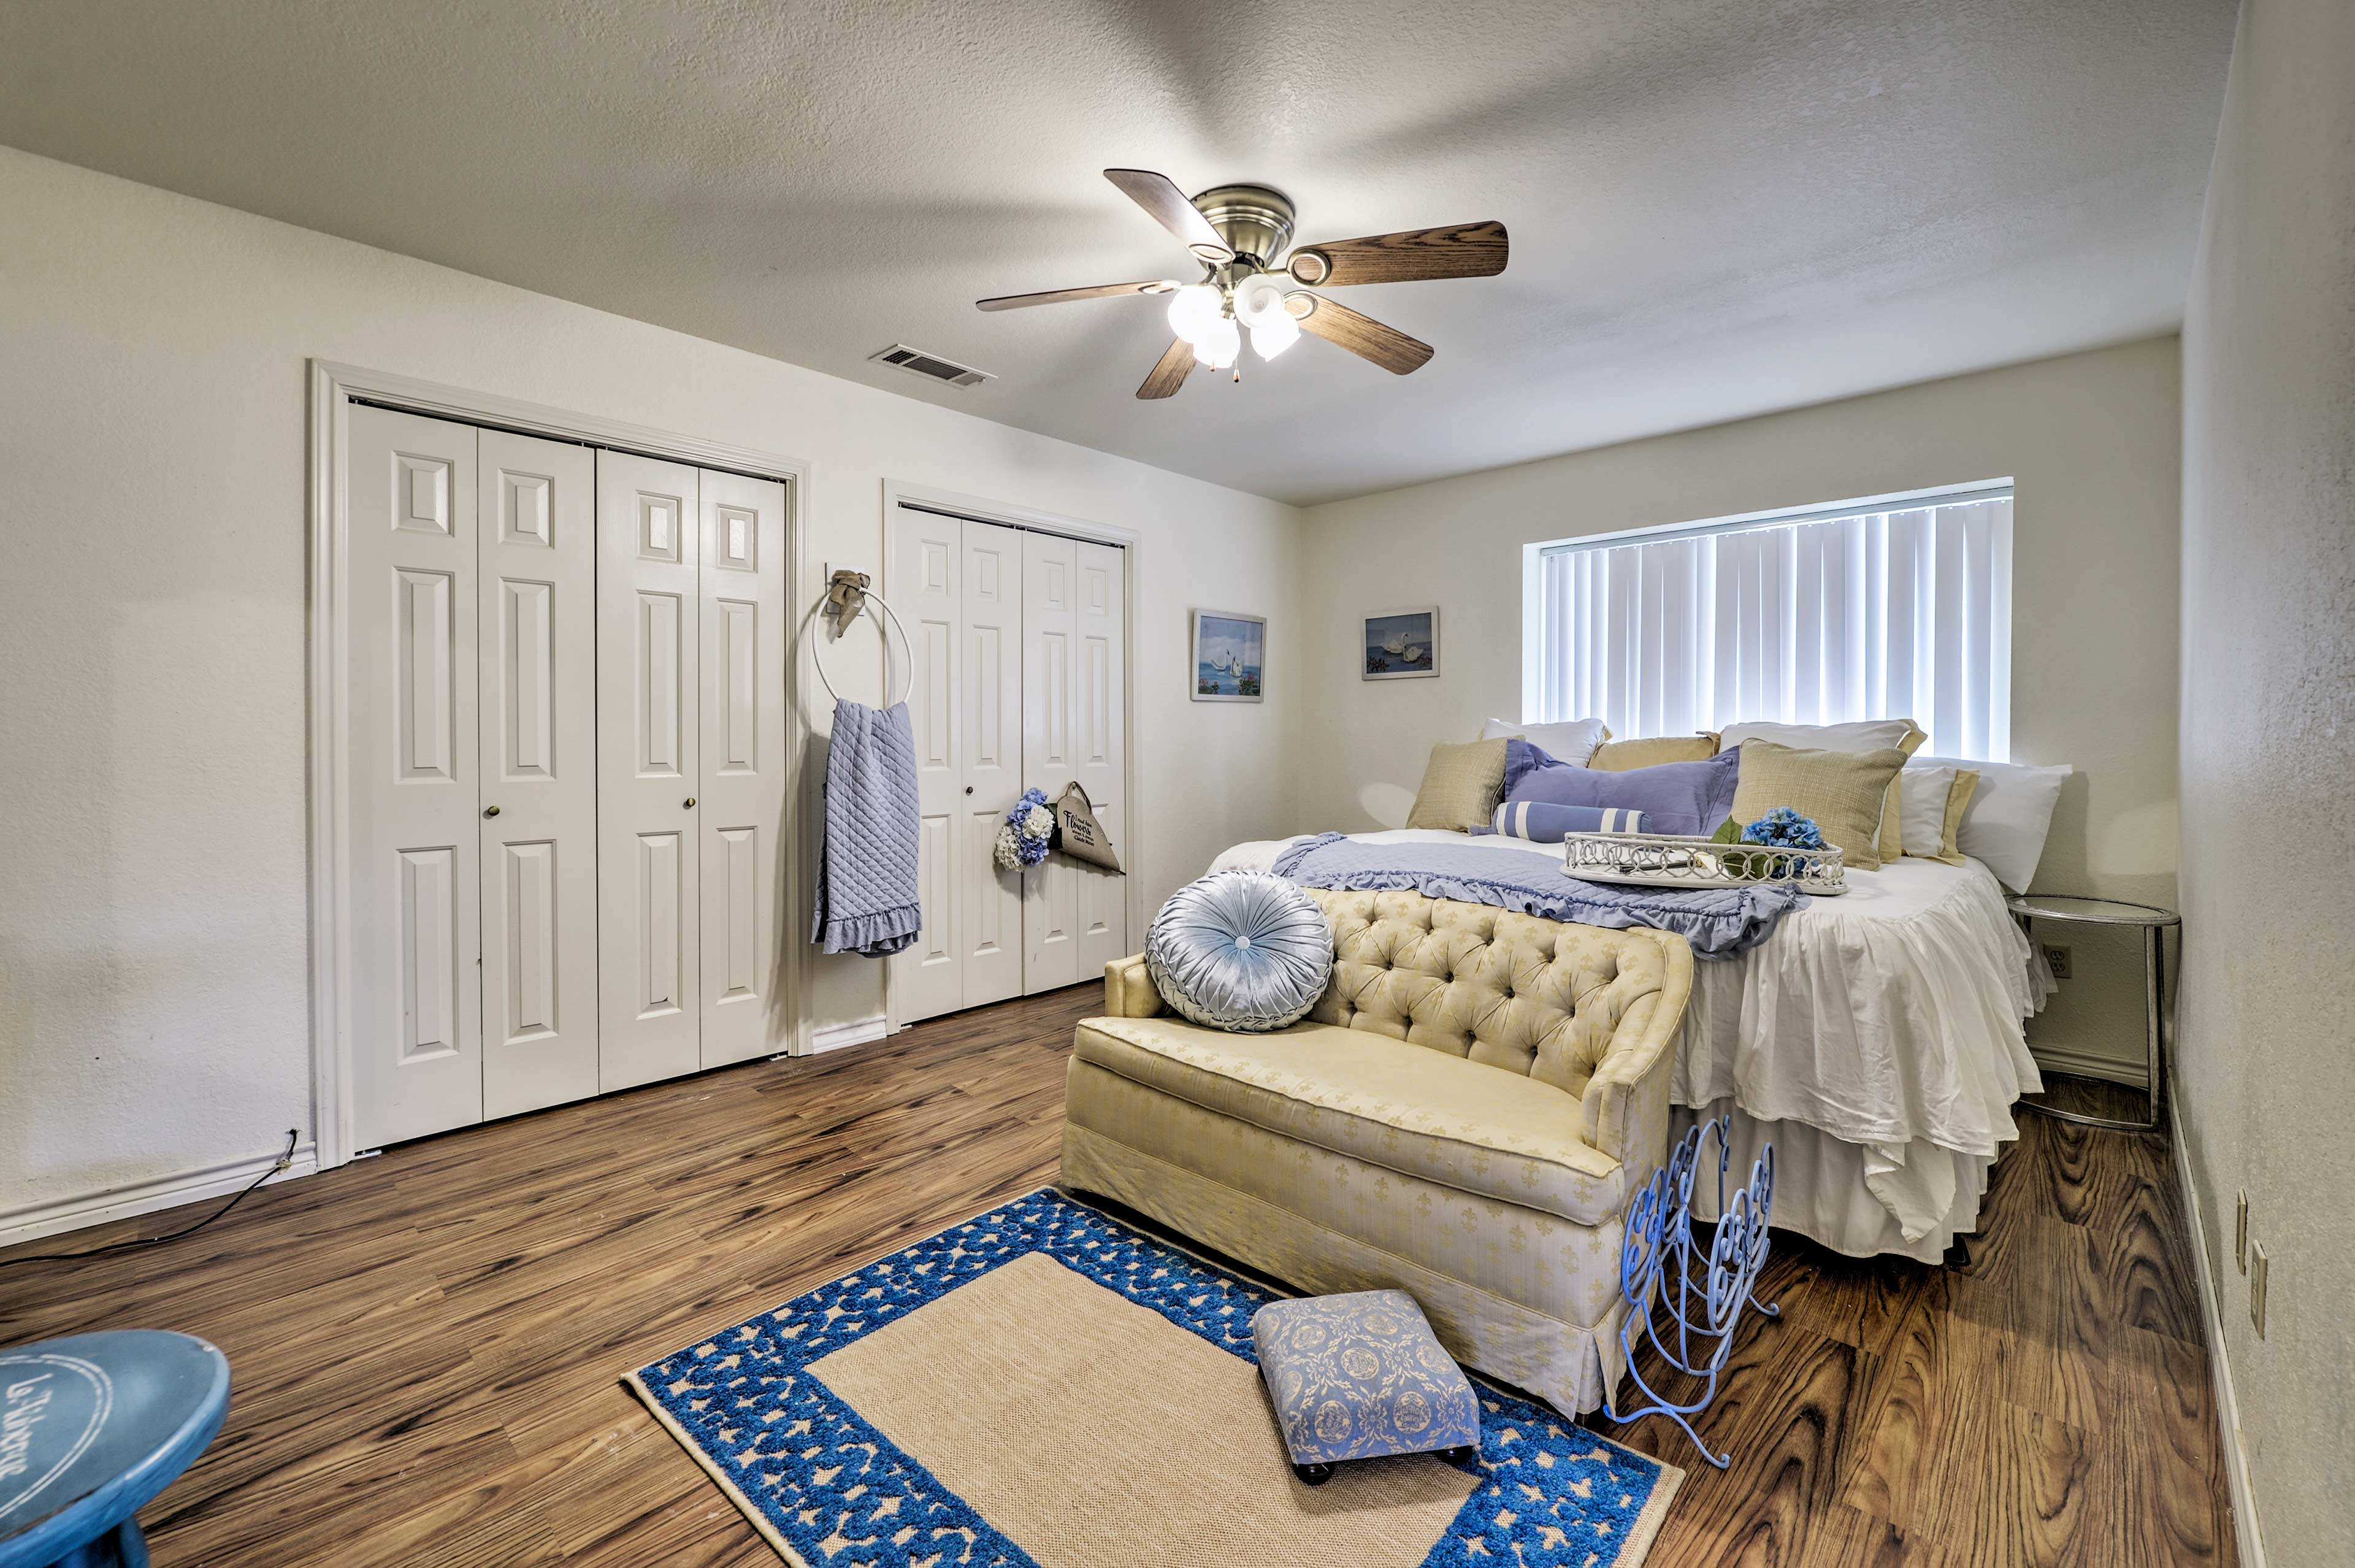 The master bedroom boasts a king-sized bed.